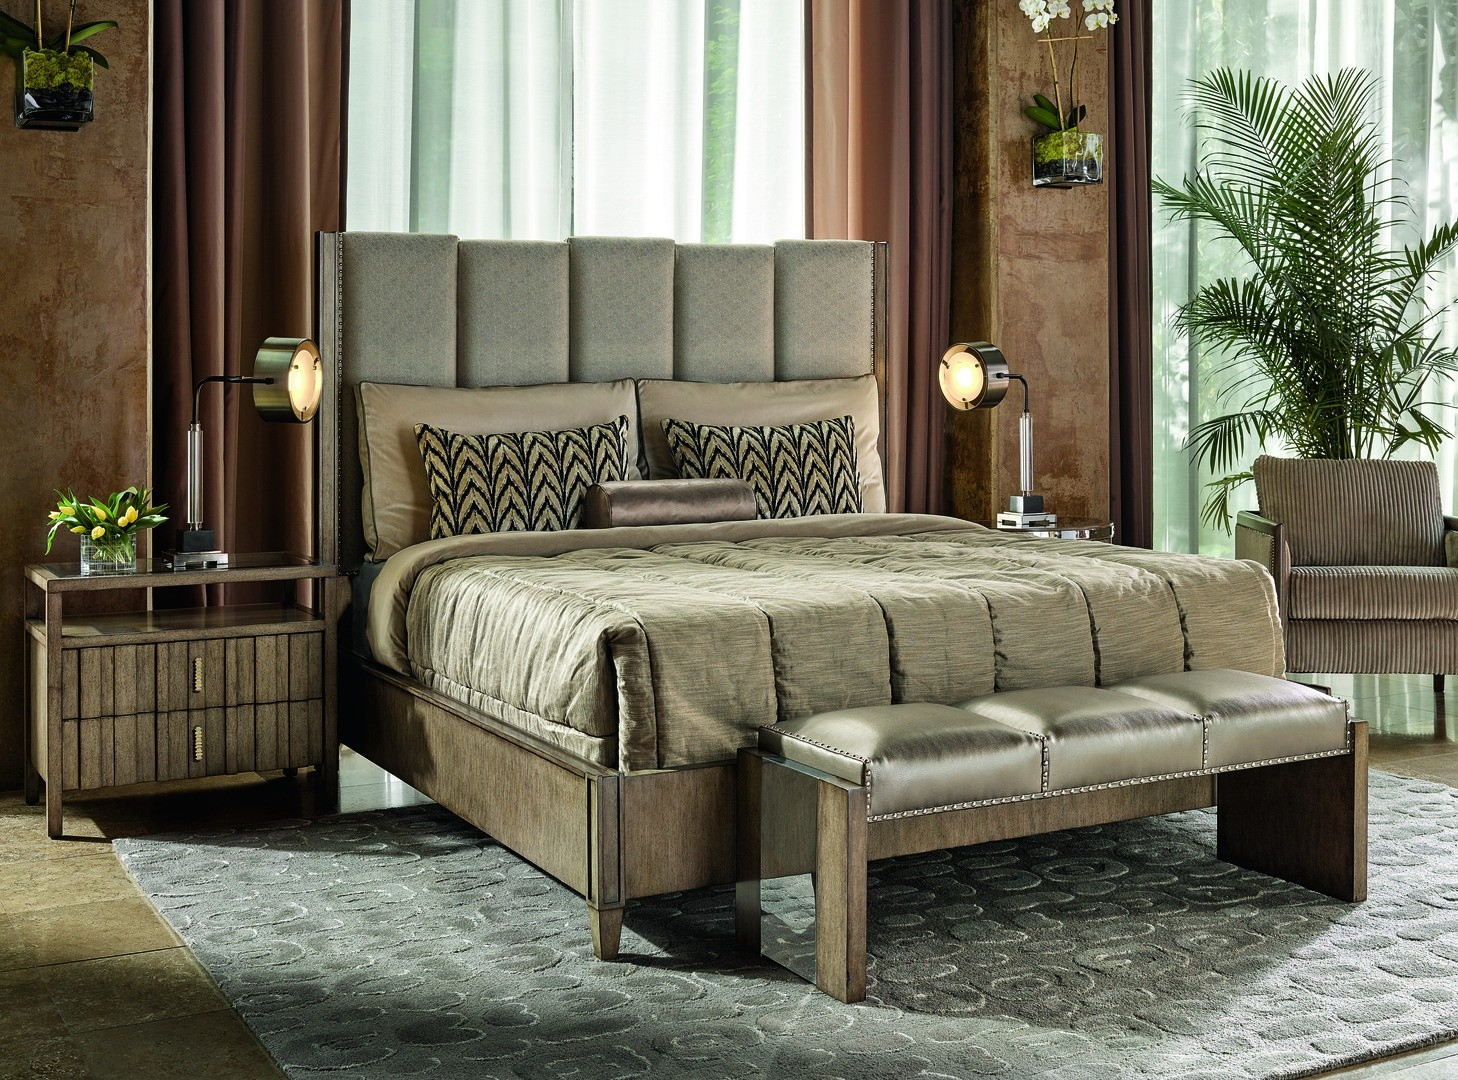 High End Rustic Bench From Our Modern Dakota Collection Dha40